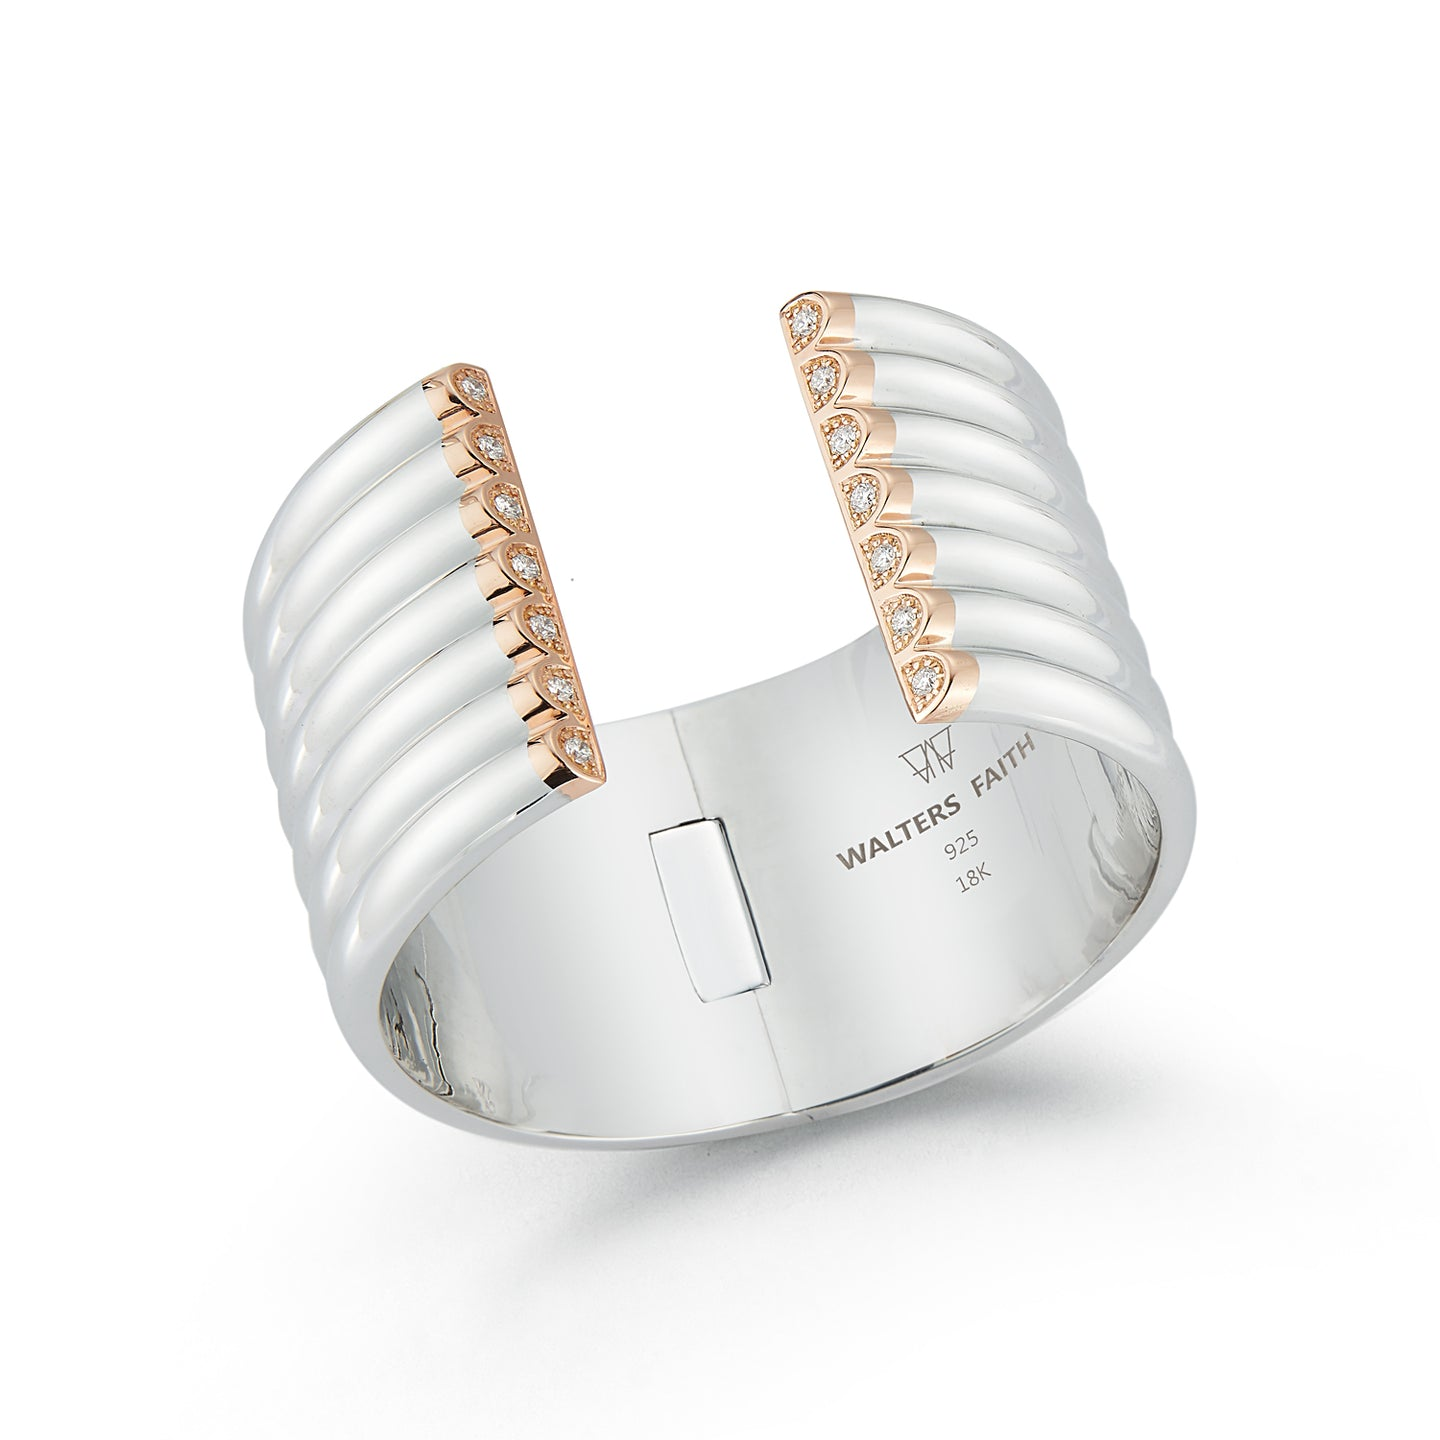 THOBY TWO TONE AND DIAMOND 42MM 7 ROW TUBULAR CUFF